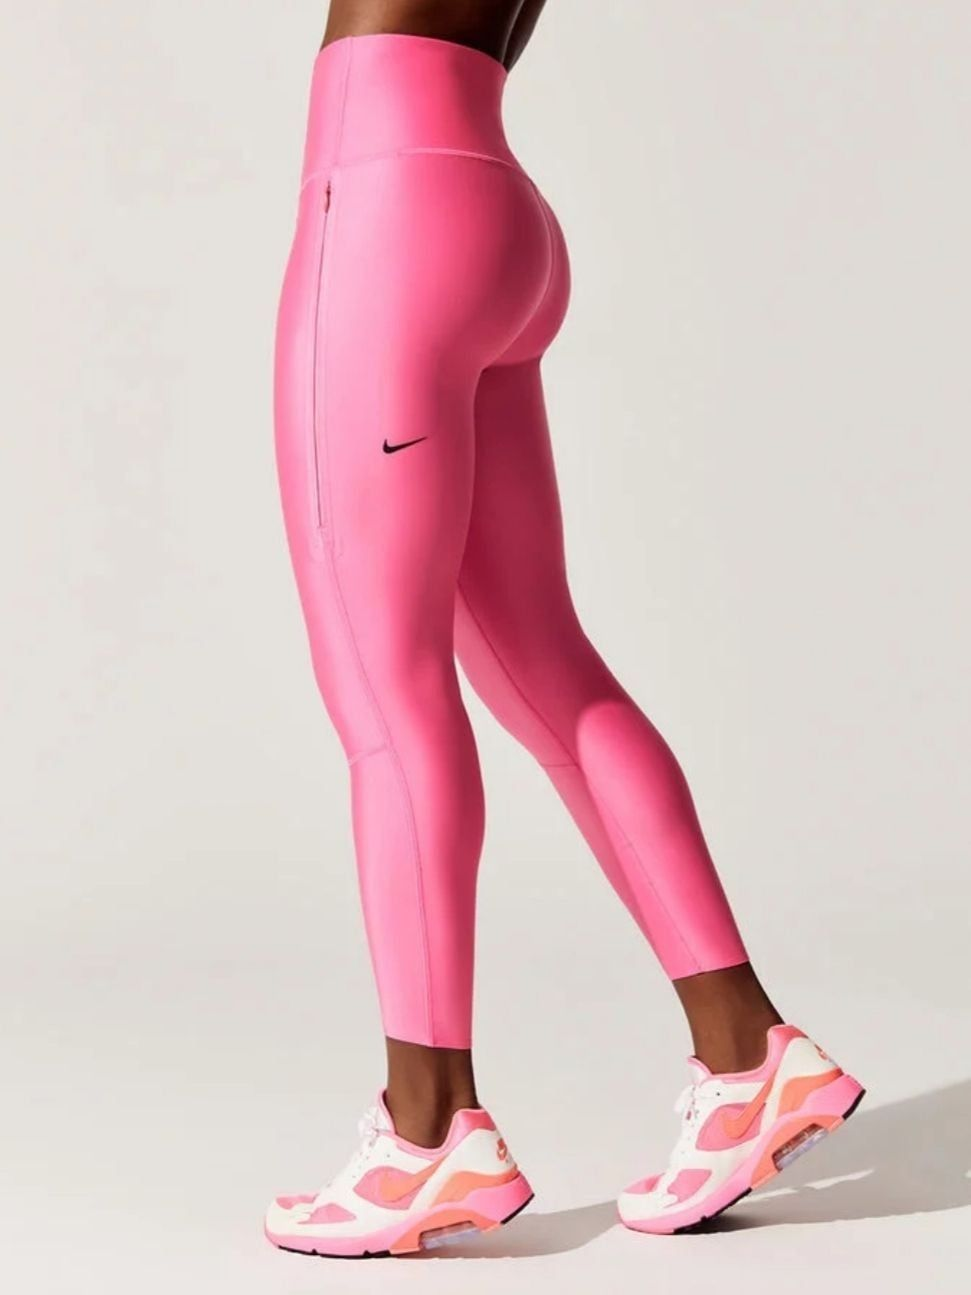 New with tags, neon pink Nike Leggings. (With images